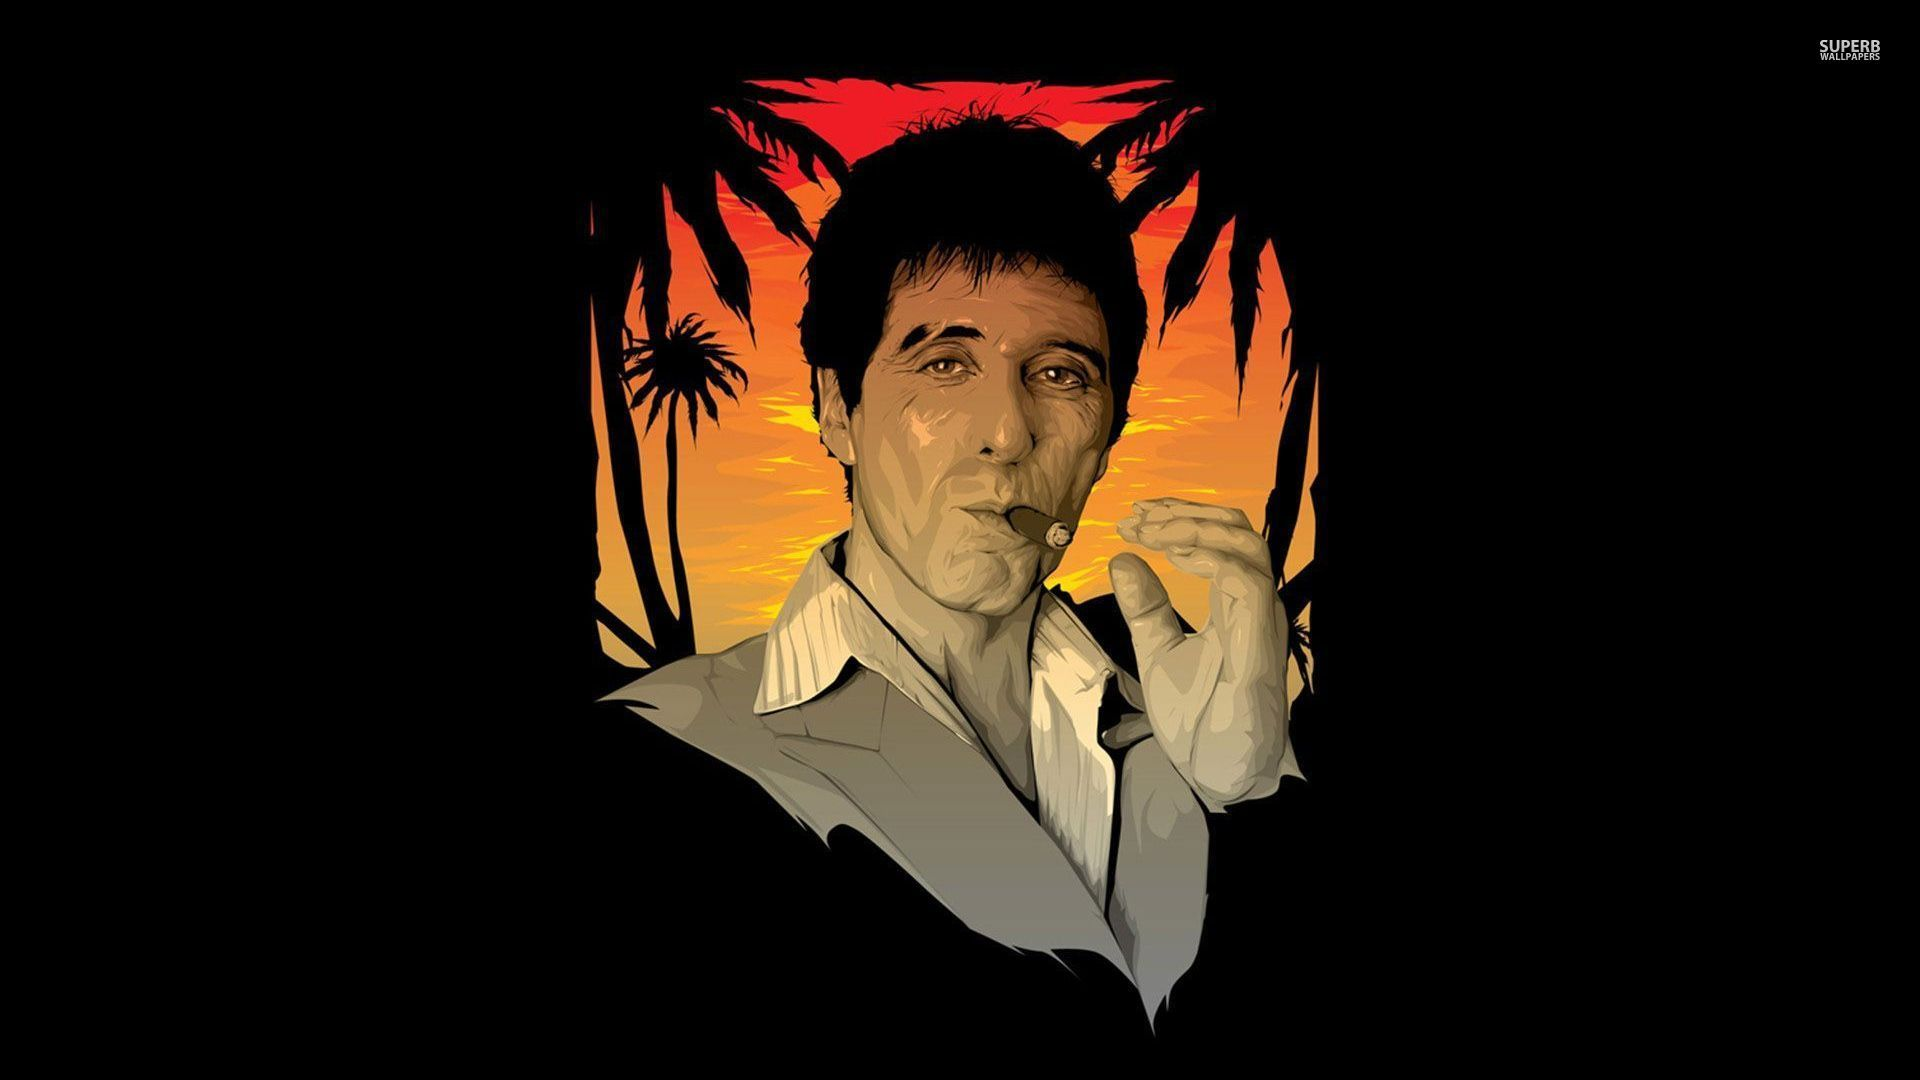 tony montana scarface 29459 1920x1080 scarface wallpaper HD 1920x1080